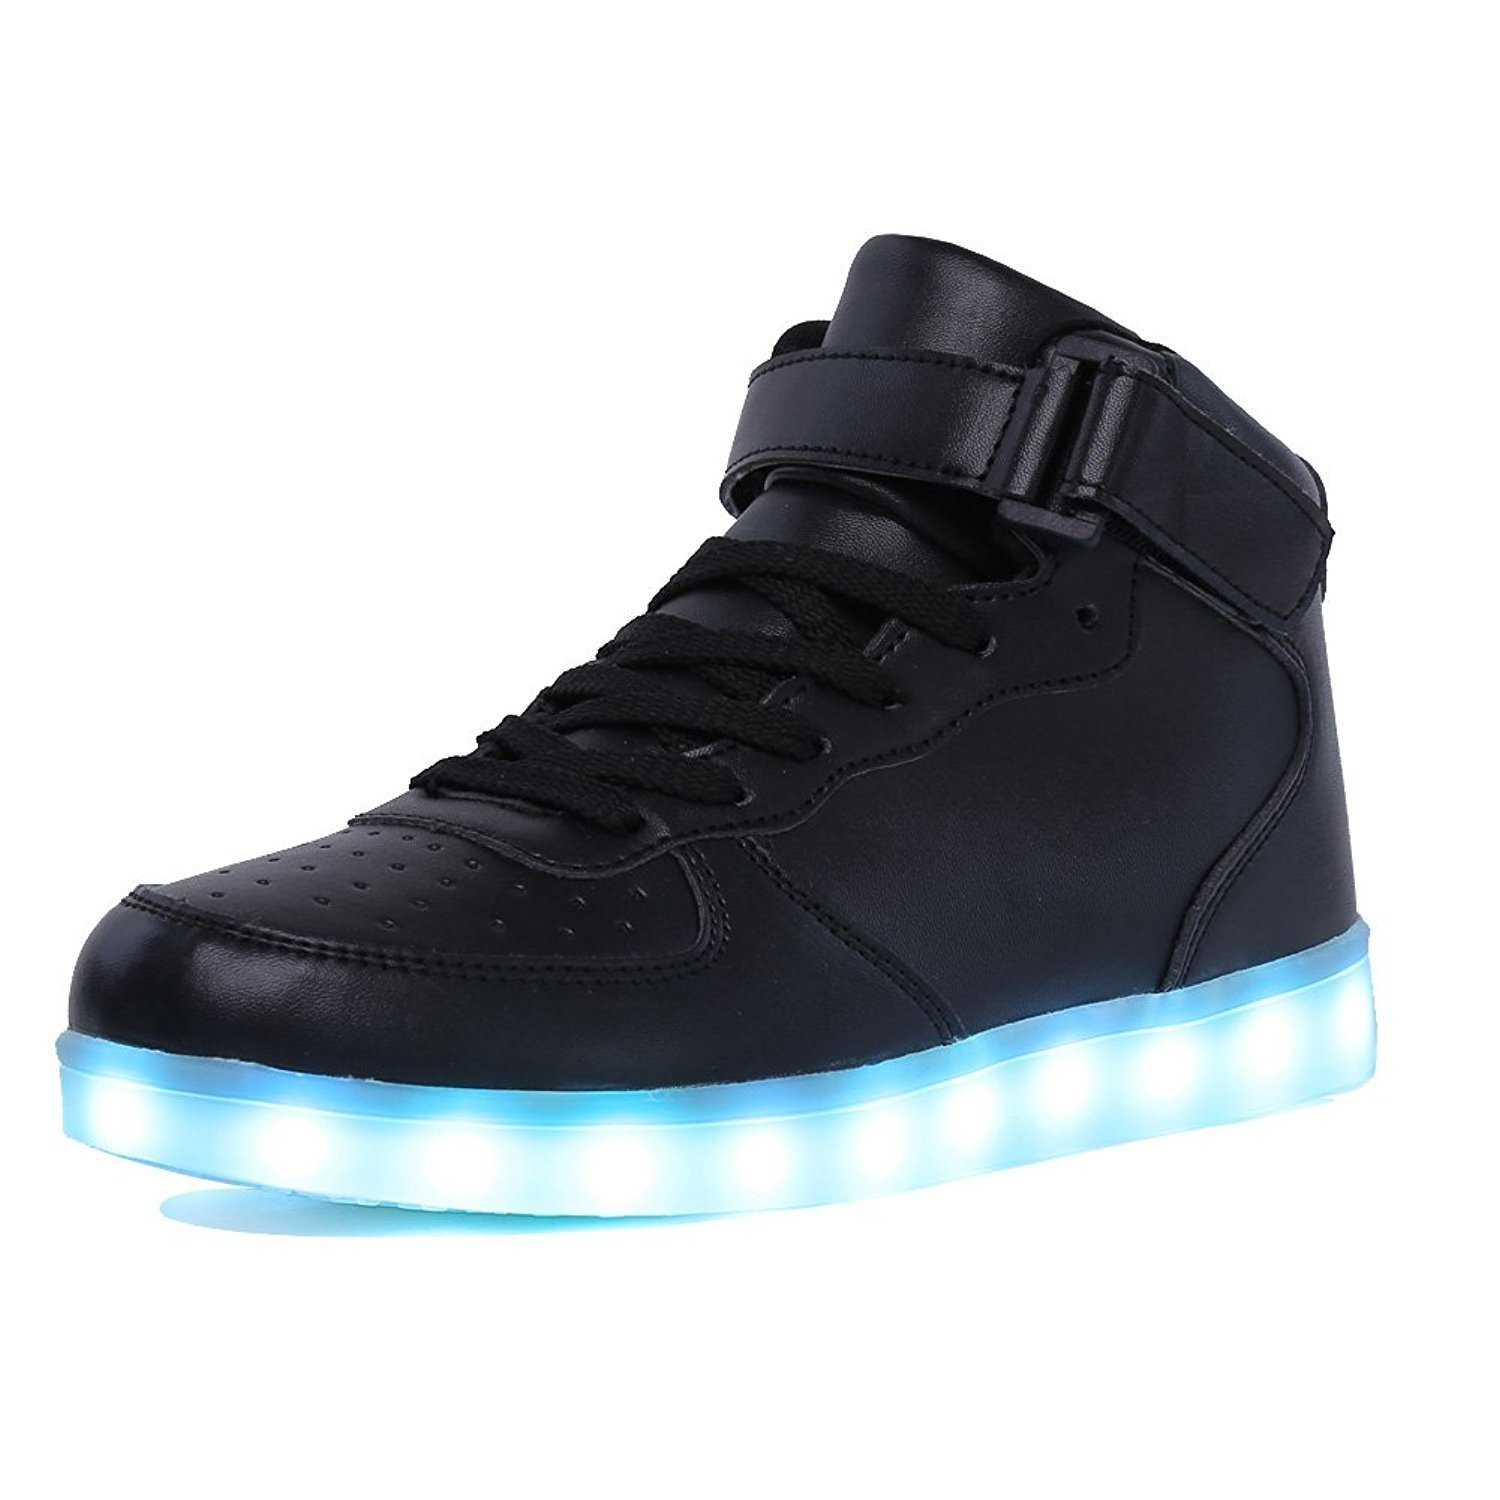 Kriativ Adult&kids Boy And Girl's High Top Led Light Up Shoes Glowing Sneakers Luminous Sole Sneakers For Women&men Y190525